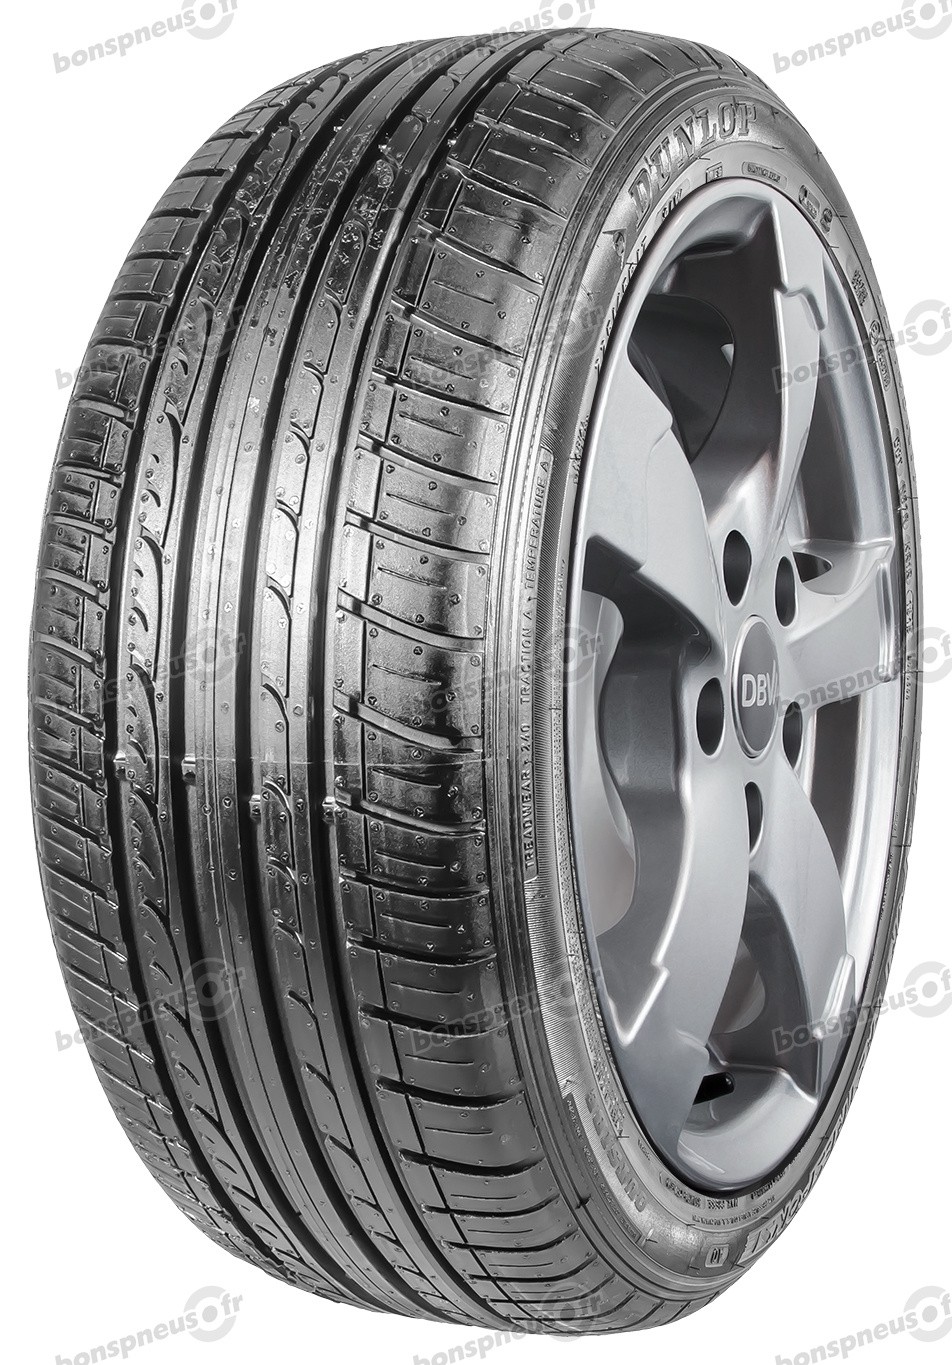 195/65 R15 91T SP Sport Fast Response MO  SP Sport Fast Response MO